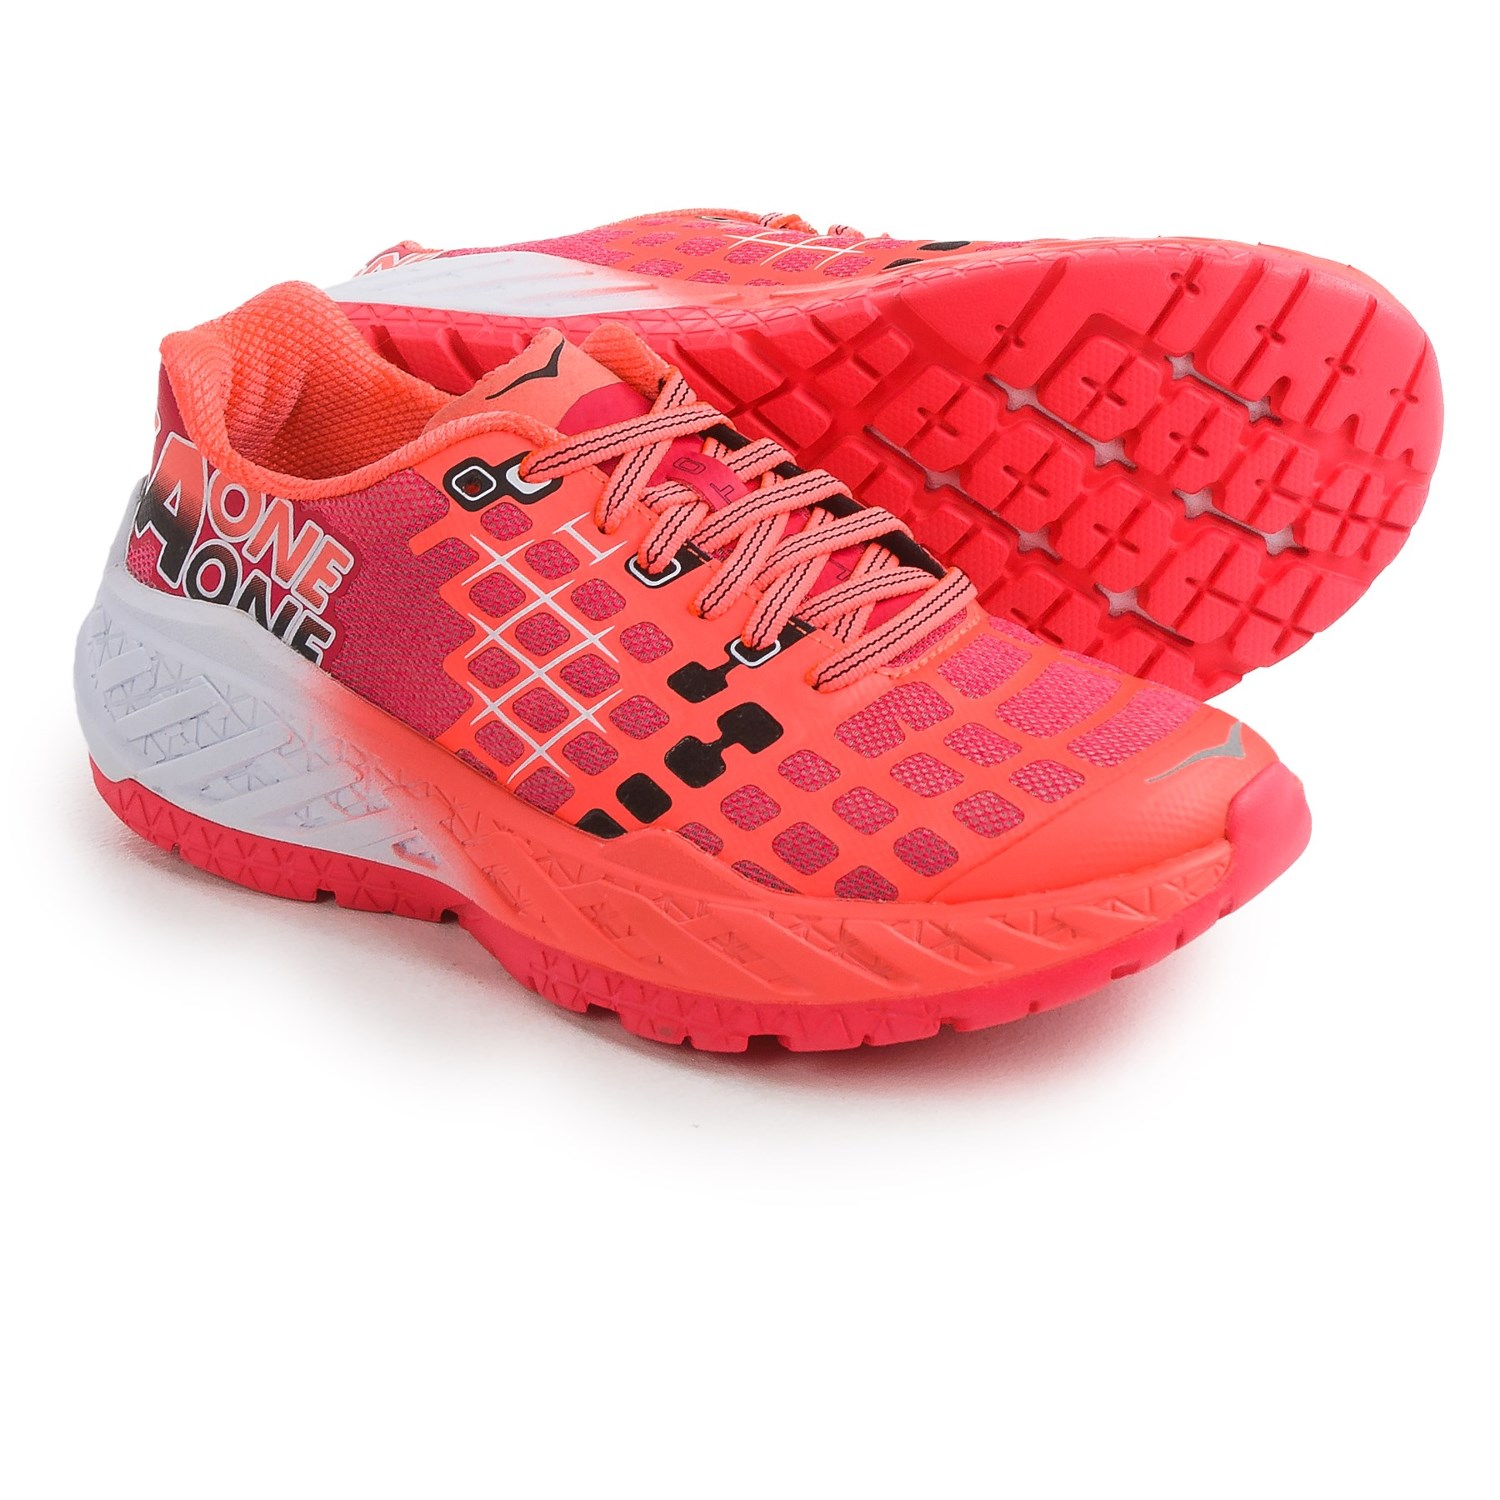 What Stores Carry Hoka Running Shoes